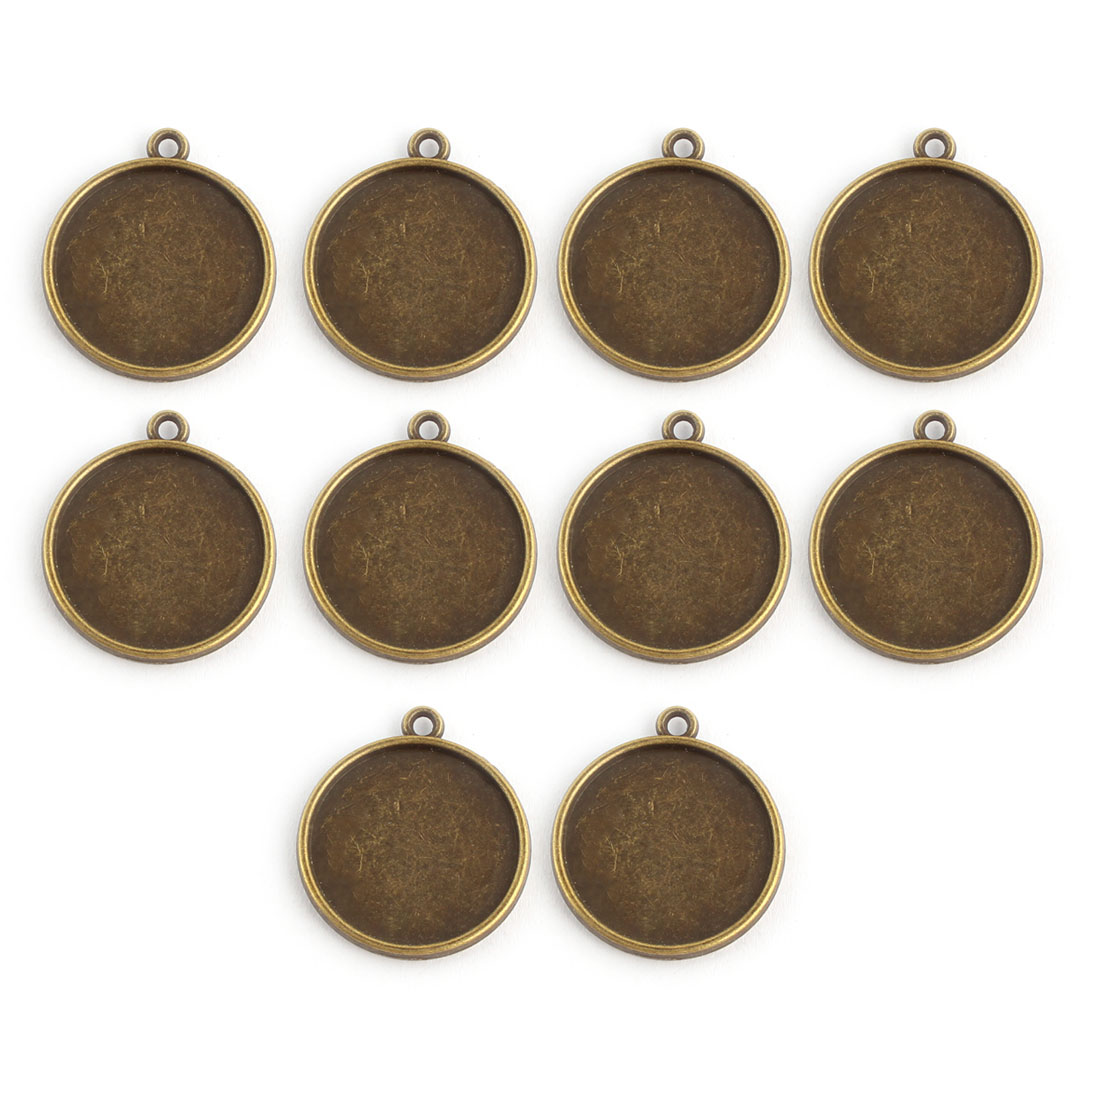 Household Copper Alloy DIY Double Sided Round Pendant Trays Brass Tone 20mm Inner Dia 10 Pcs